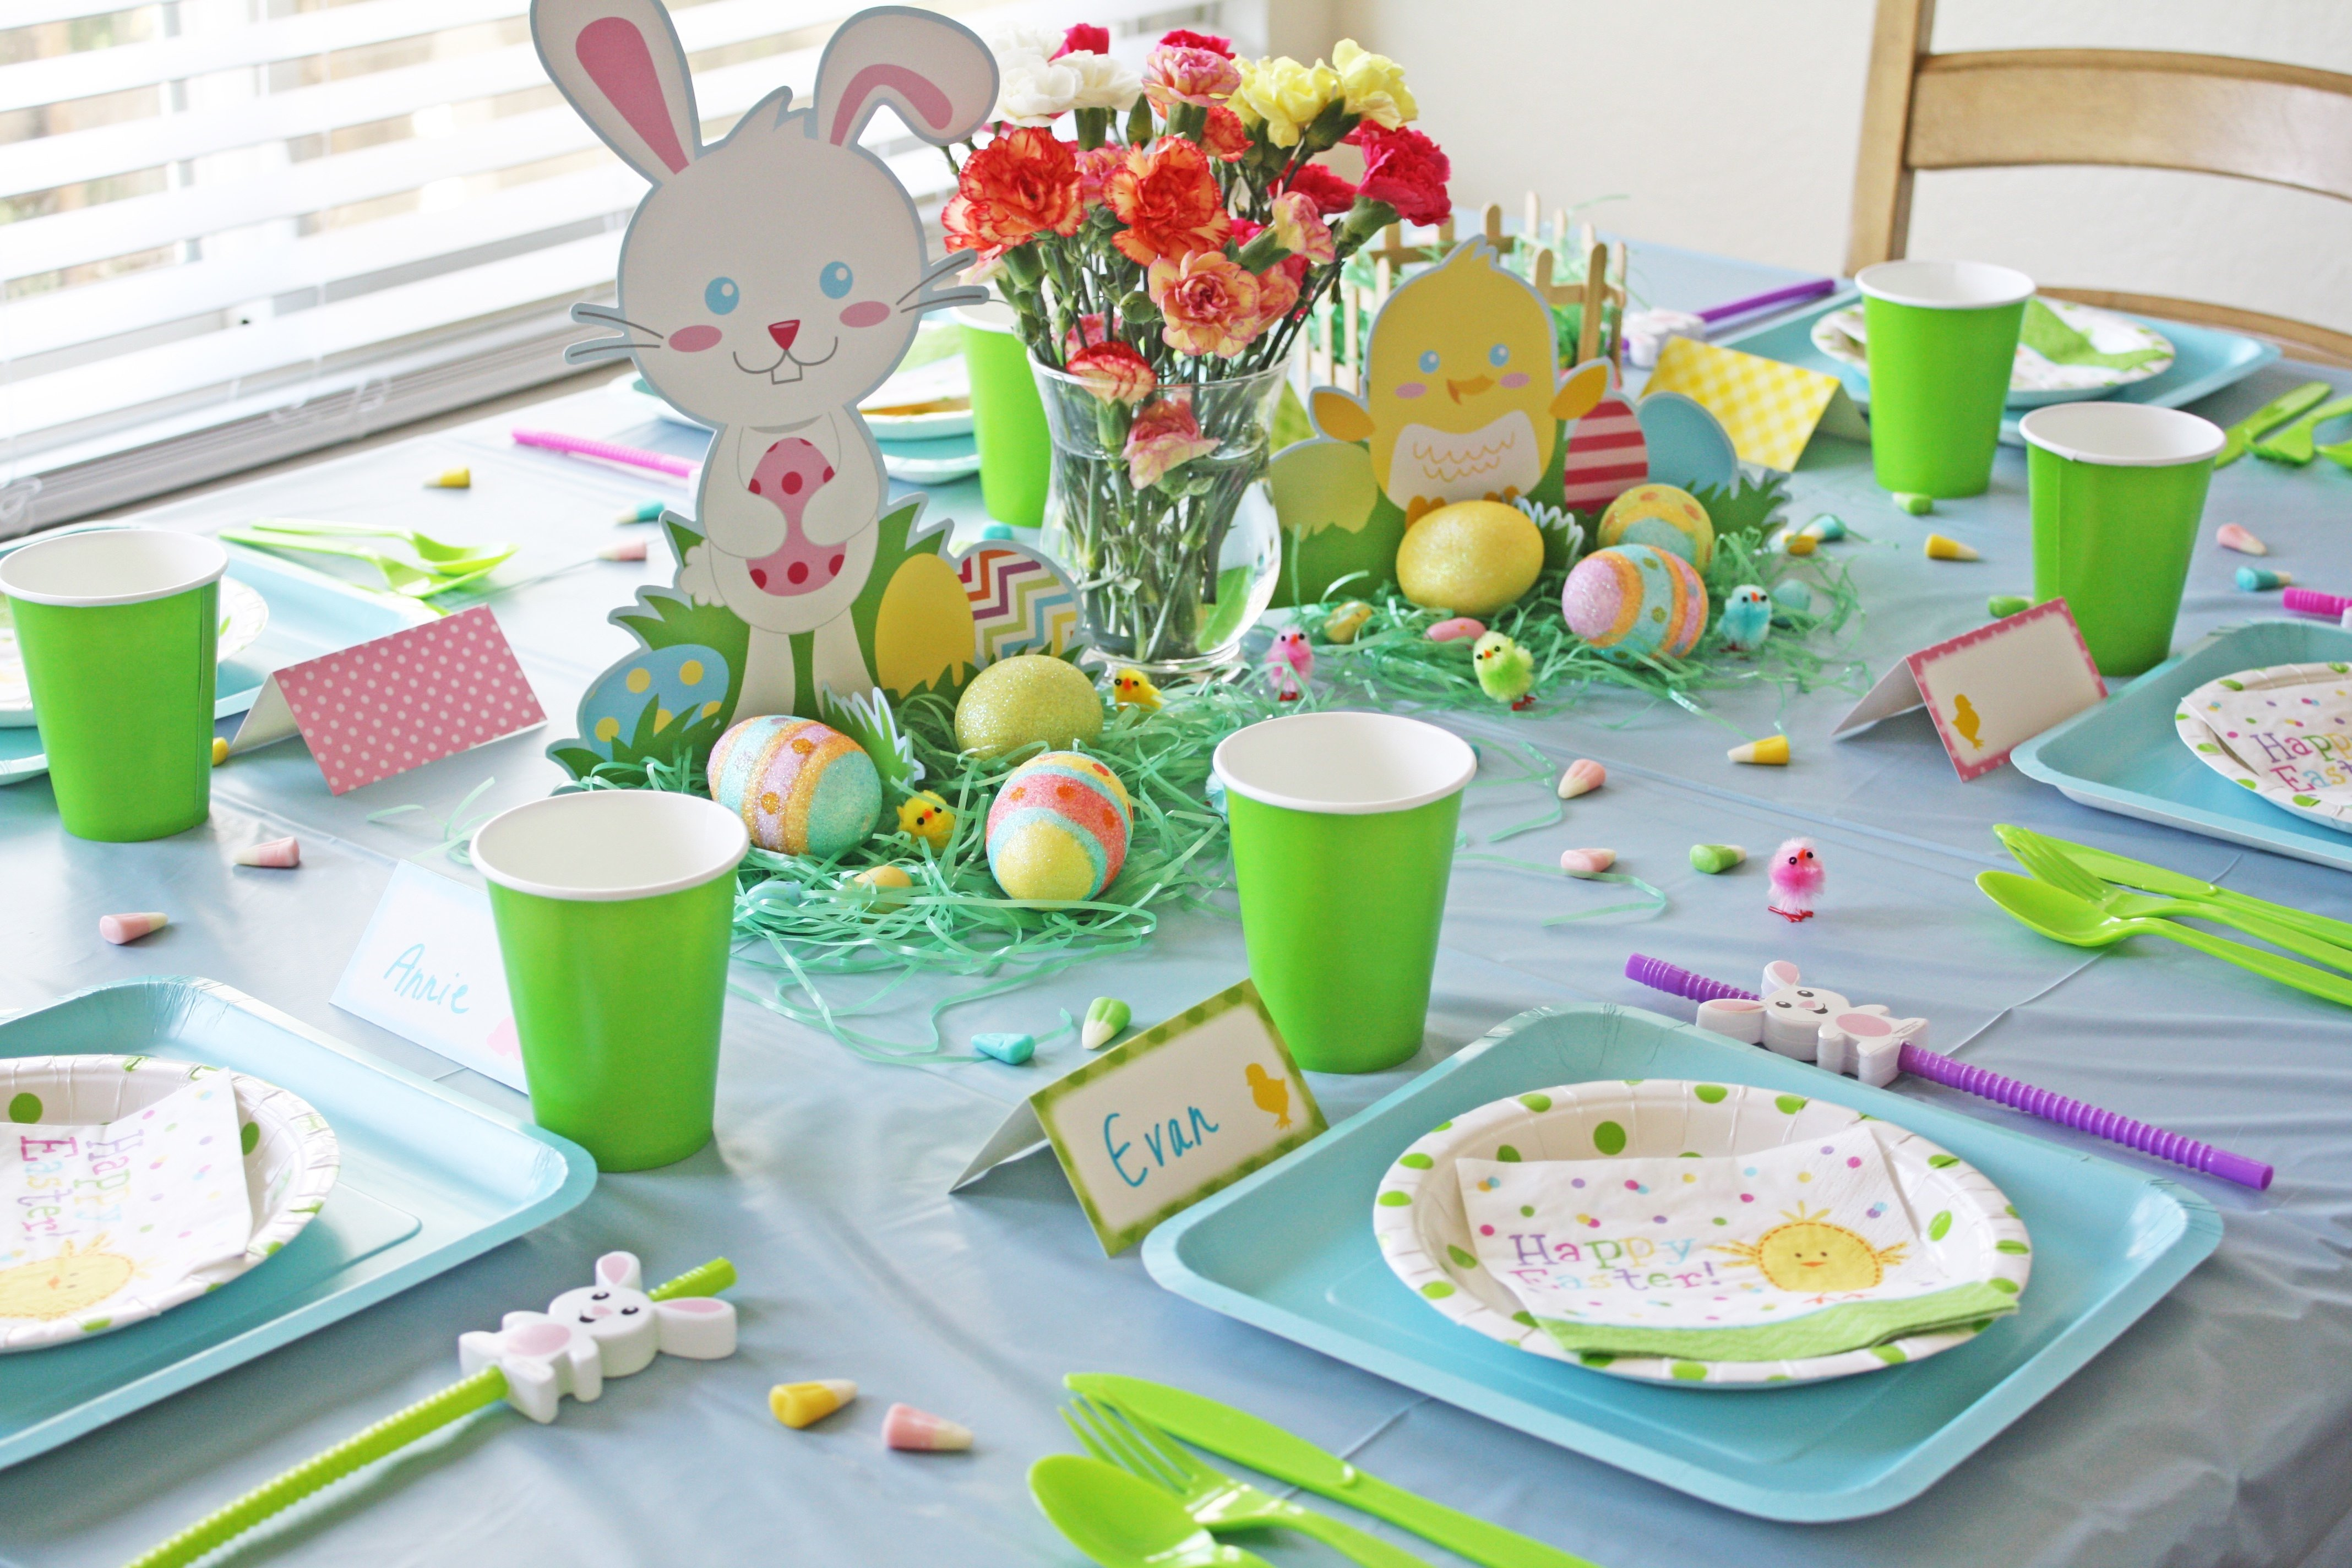 10 Spectacular Easter Party Ideas For Kids easter decorations ideas hd wallpapers images download free 2020